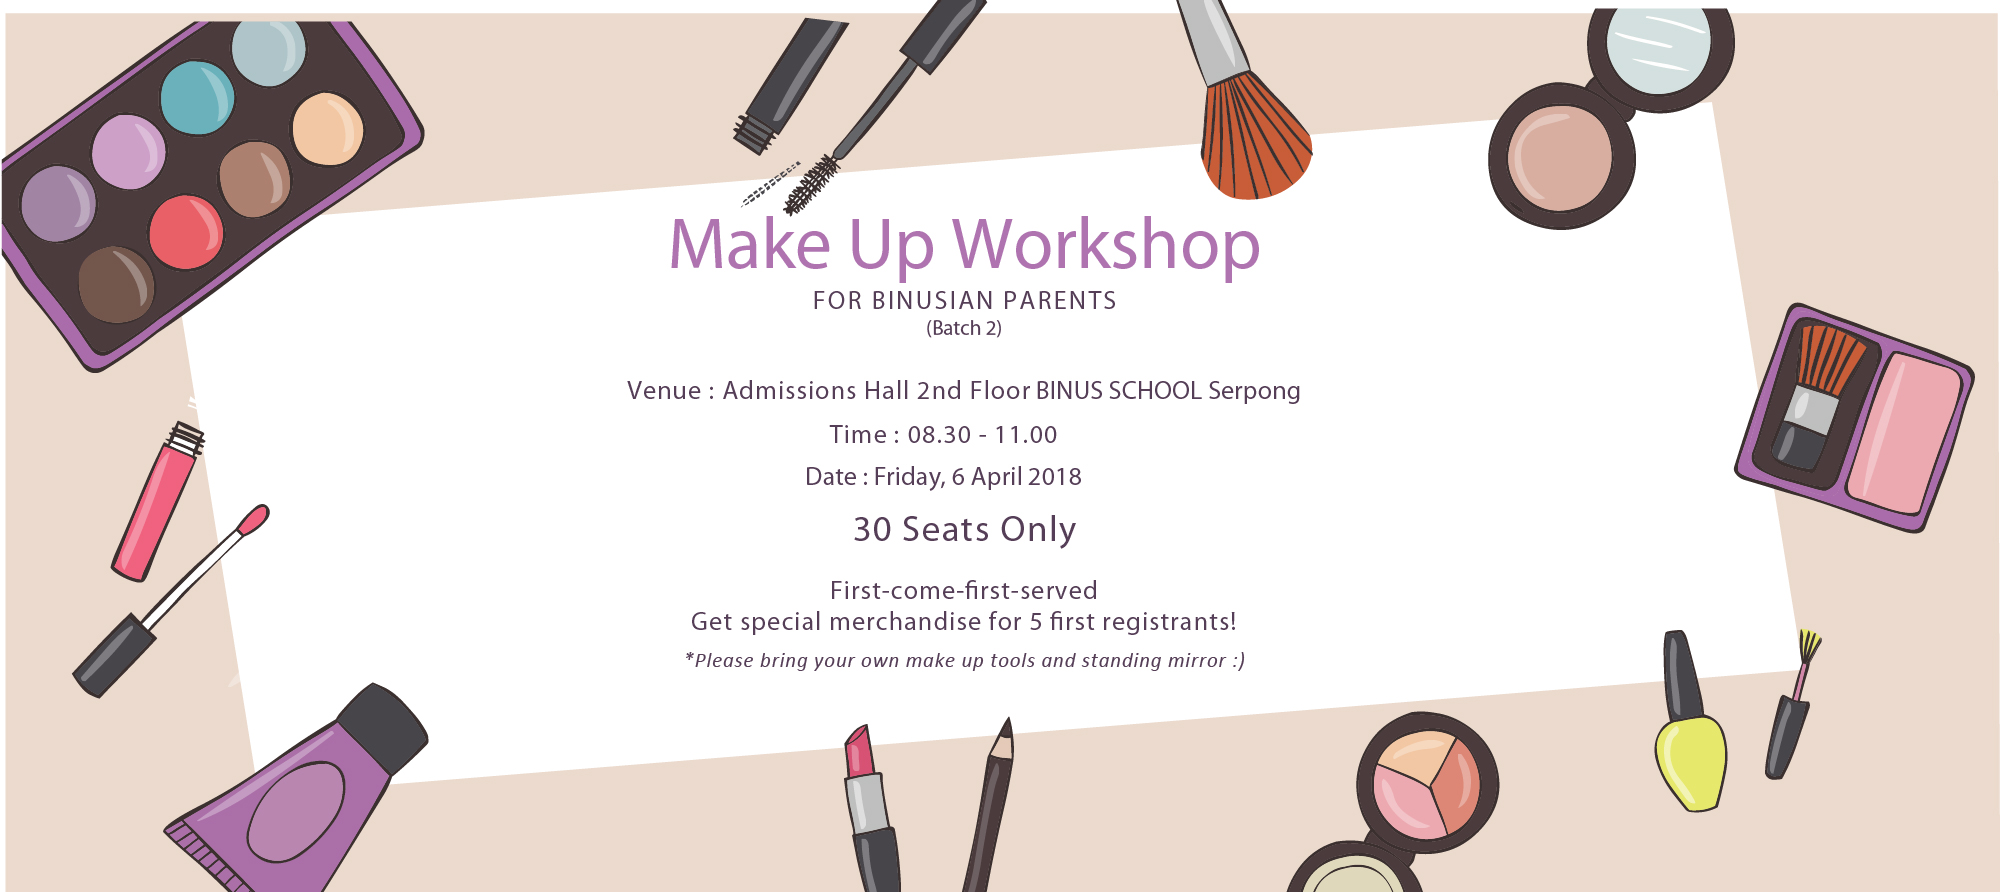 Make Up Workshop (Batch 2)